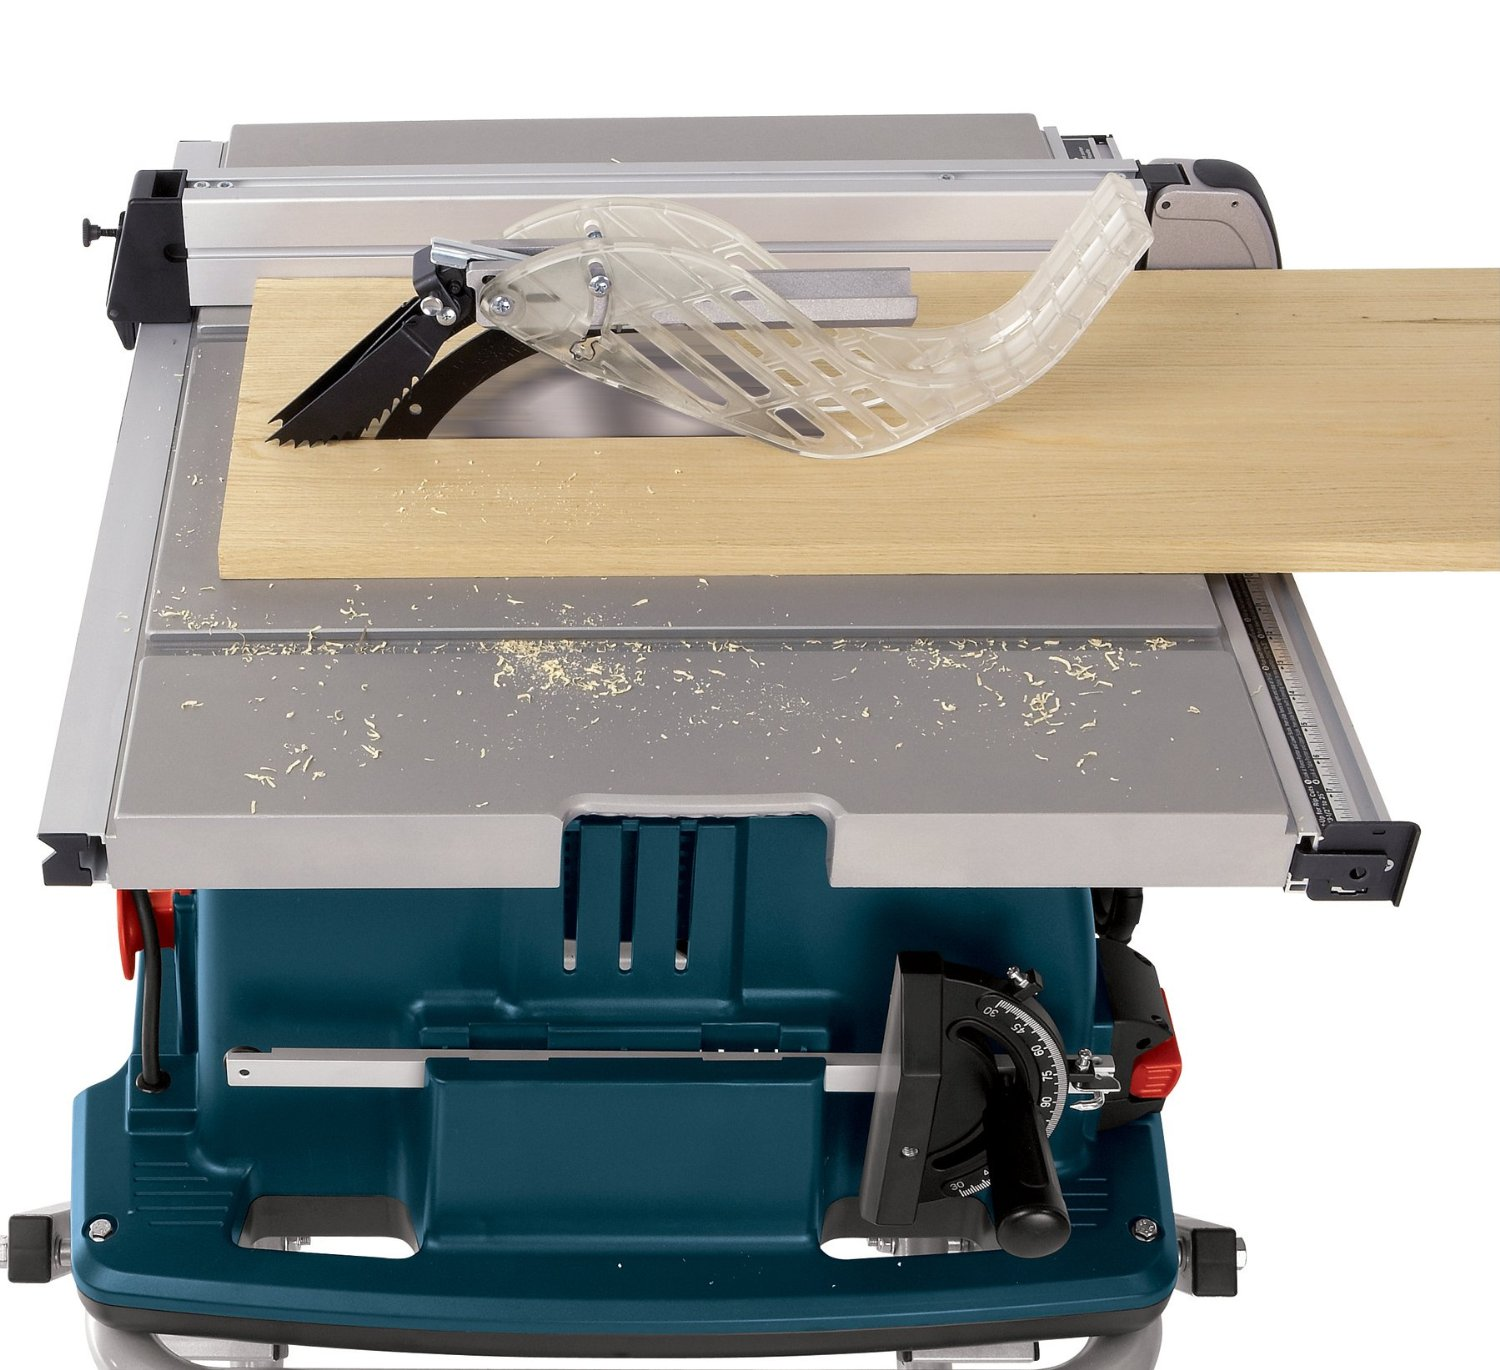 Bosch 4100 09 review a portable table saw bosch 4100 09 10 inch table saw greentooth